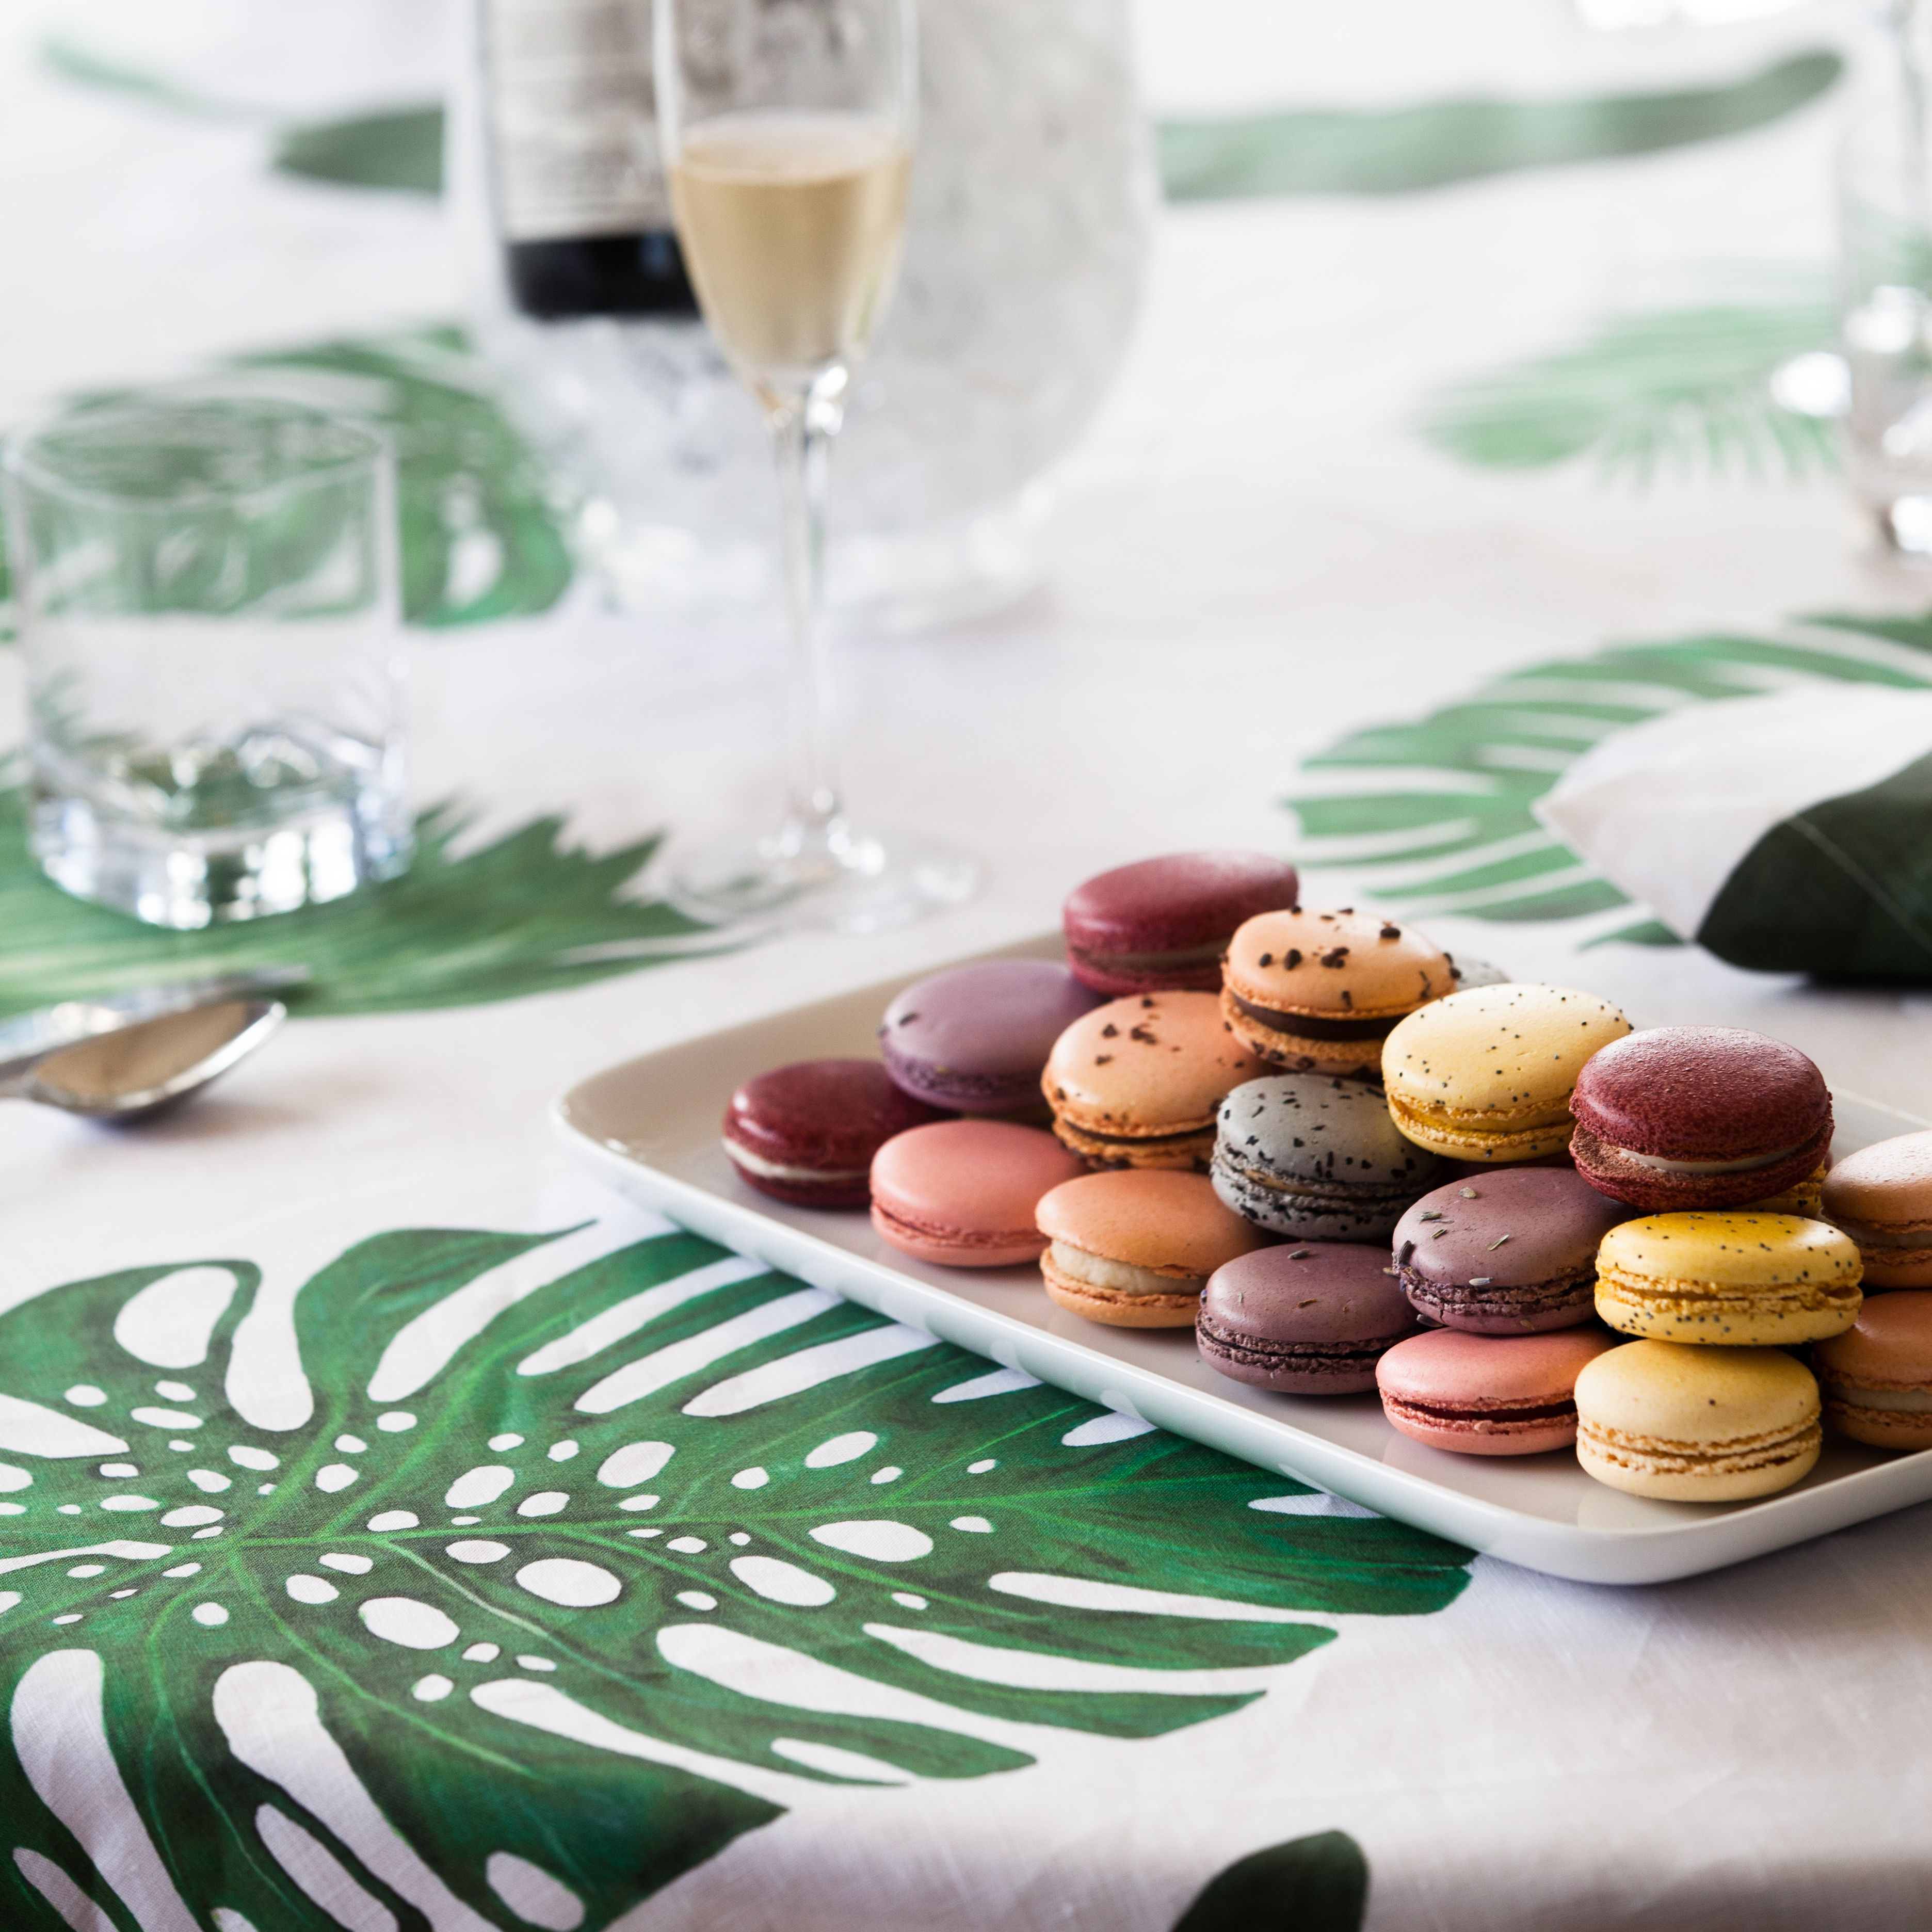 Huddlesonu0027s Tropical Leaves Tablecloth Features A Unique Watercolor  Painting Of Monstera, Banana And Palm Leaves In Rich Shades Of Green  Digitally Printed ...